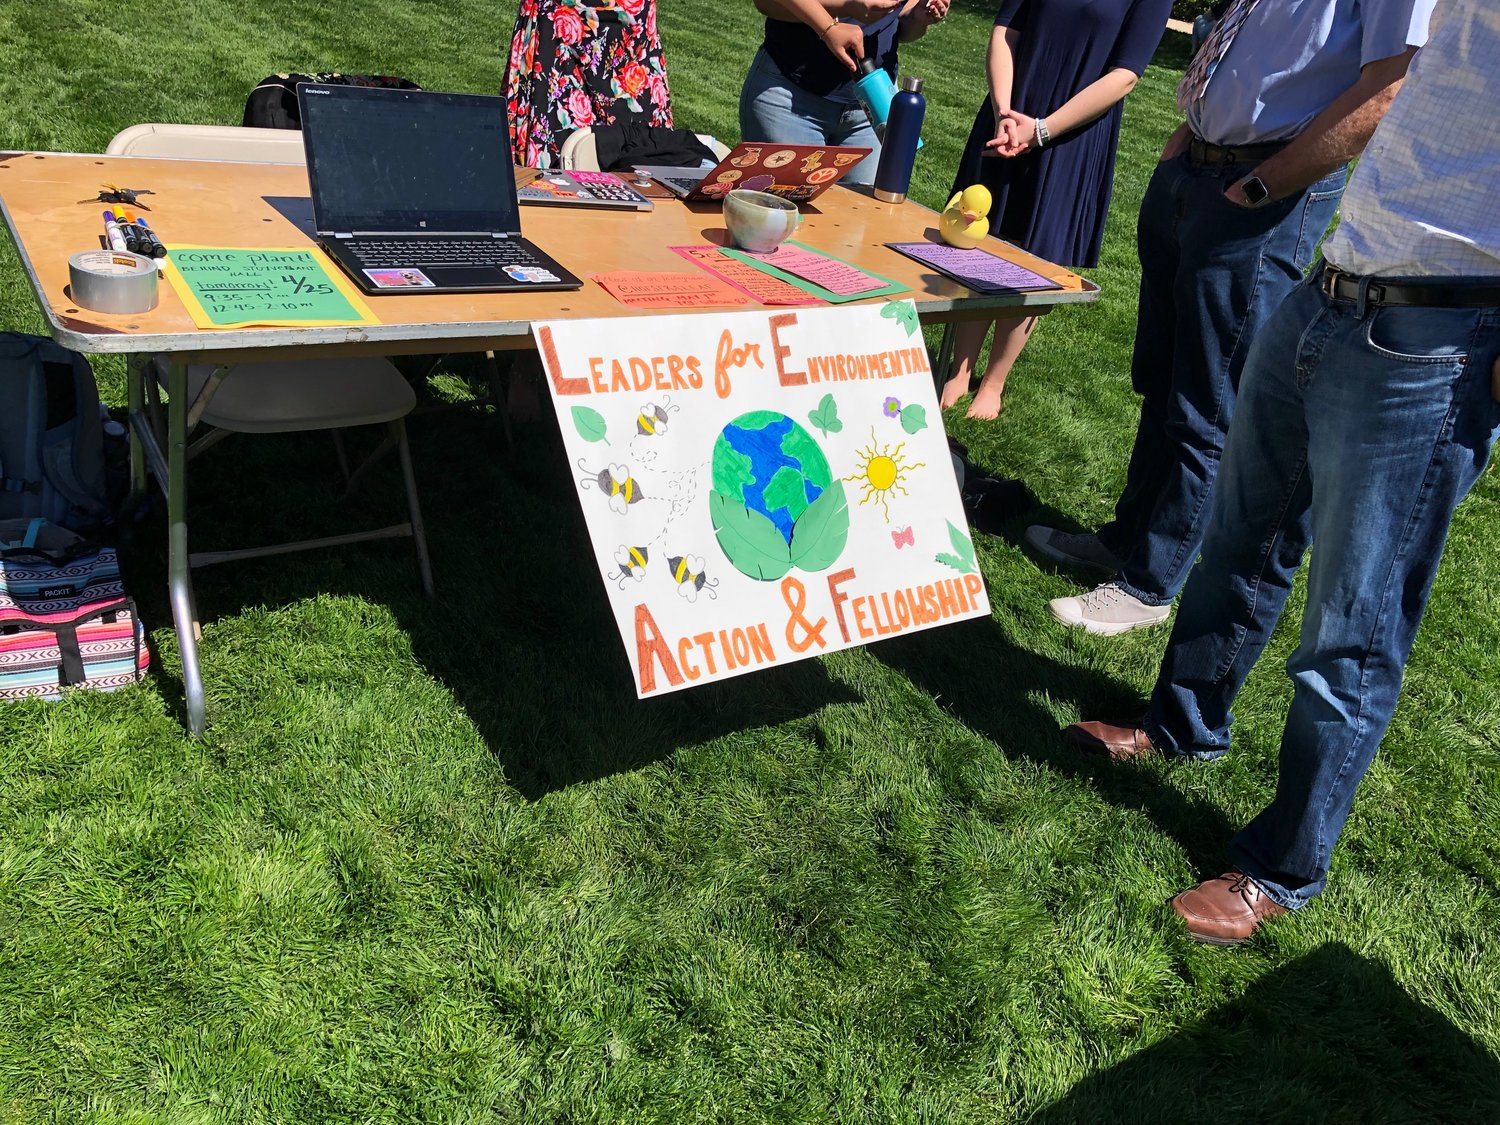 Leaders for Environmental Action and Fellowship (LEAF) had a table with information about how their fellow Hofstra students can help protect the environment.